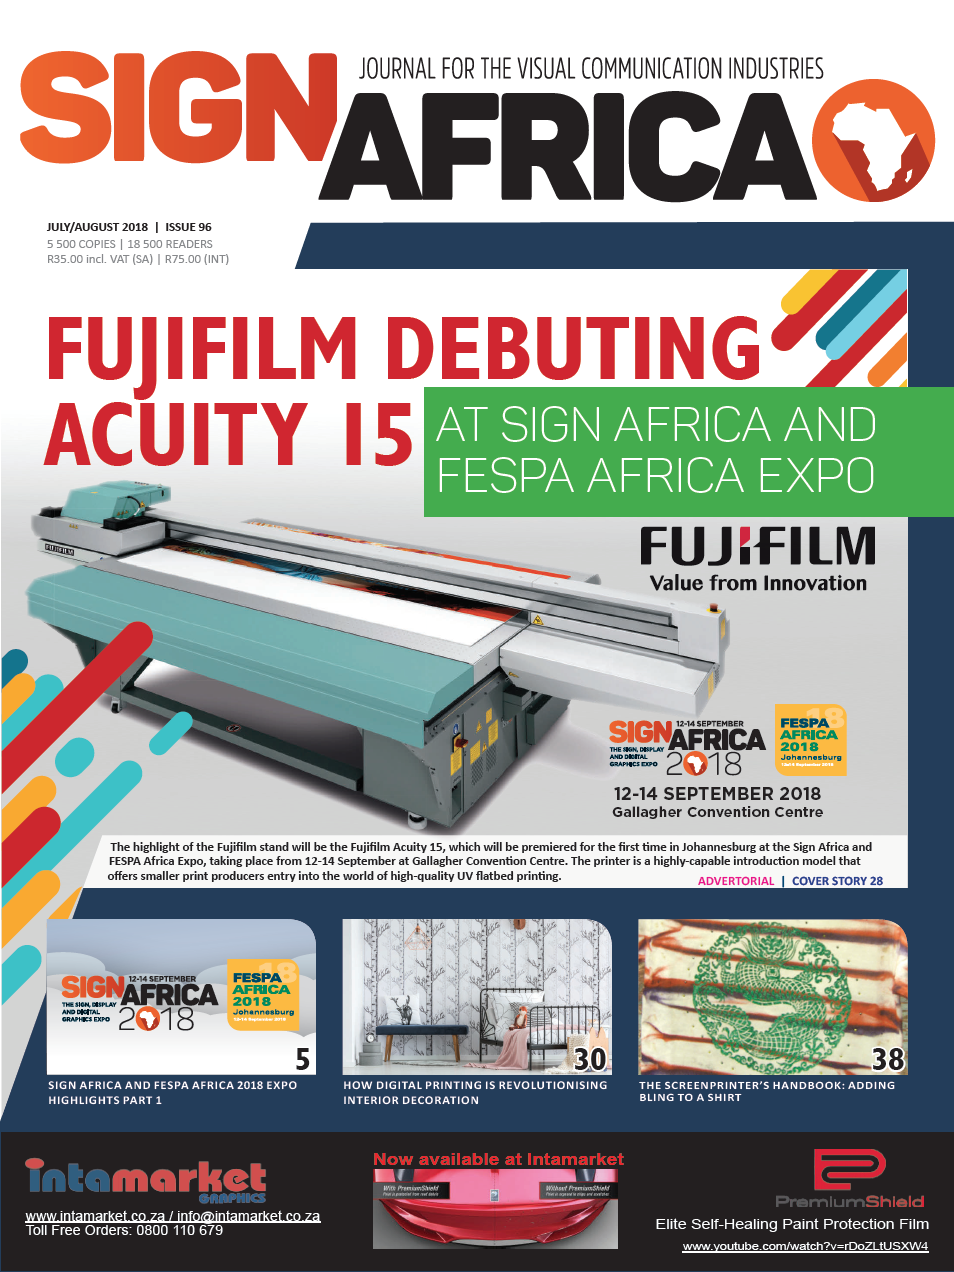 https://www.signafrica.com/wp-content/uploads/2018/08/SAJjulyAUG2018_Cover.png